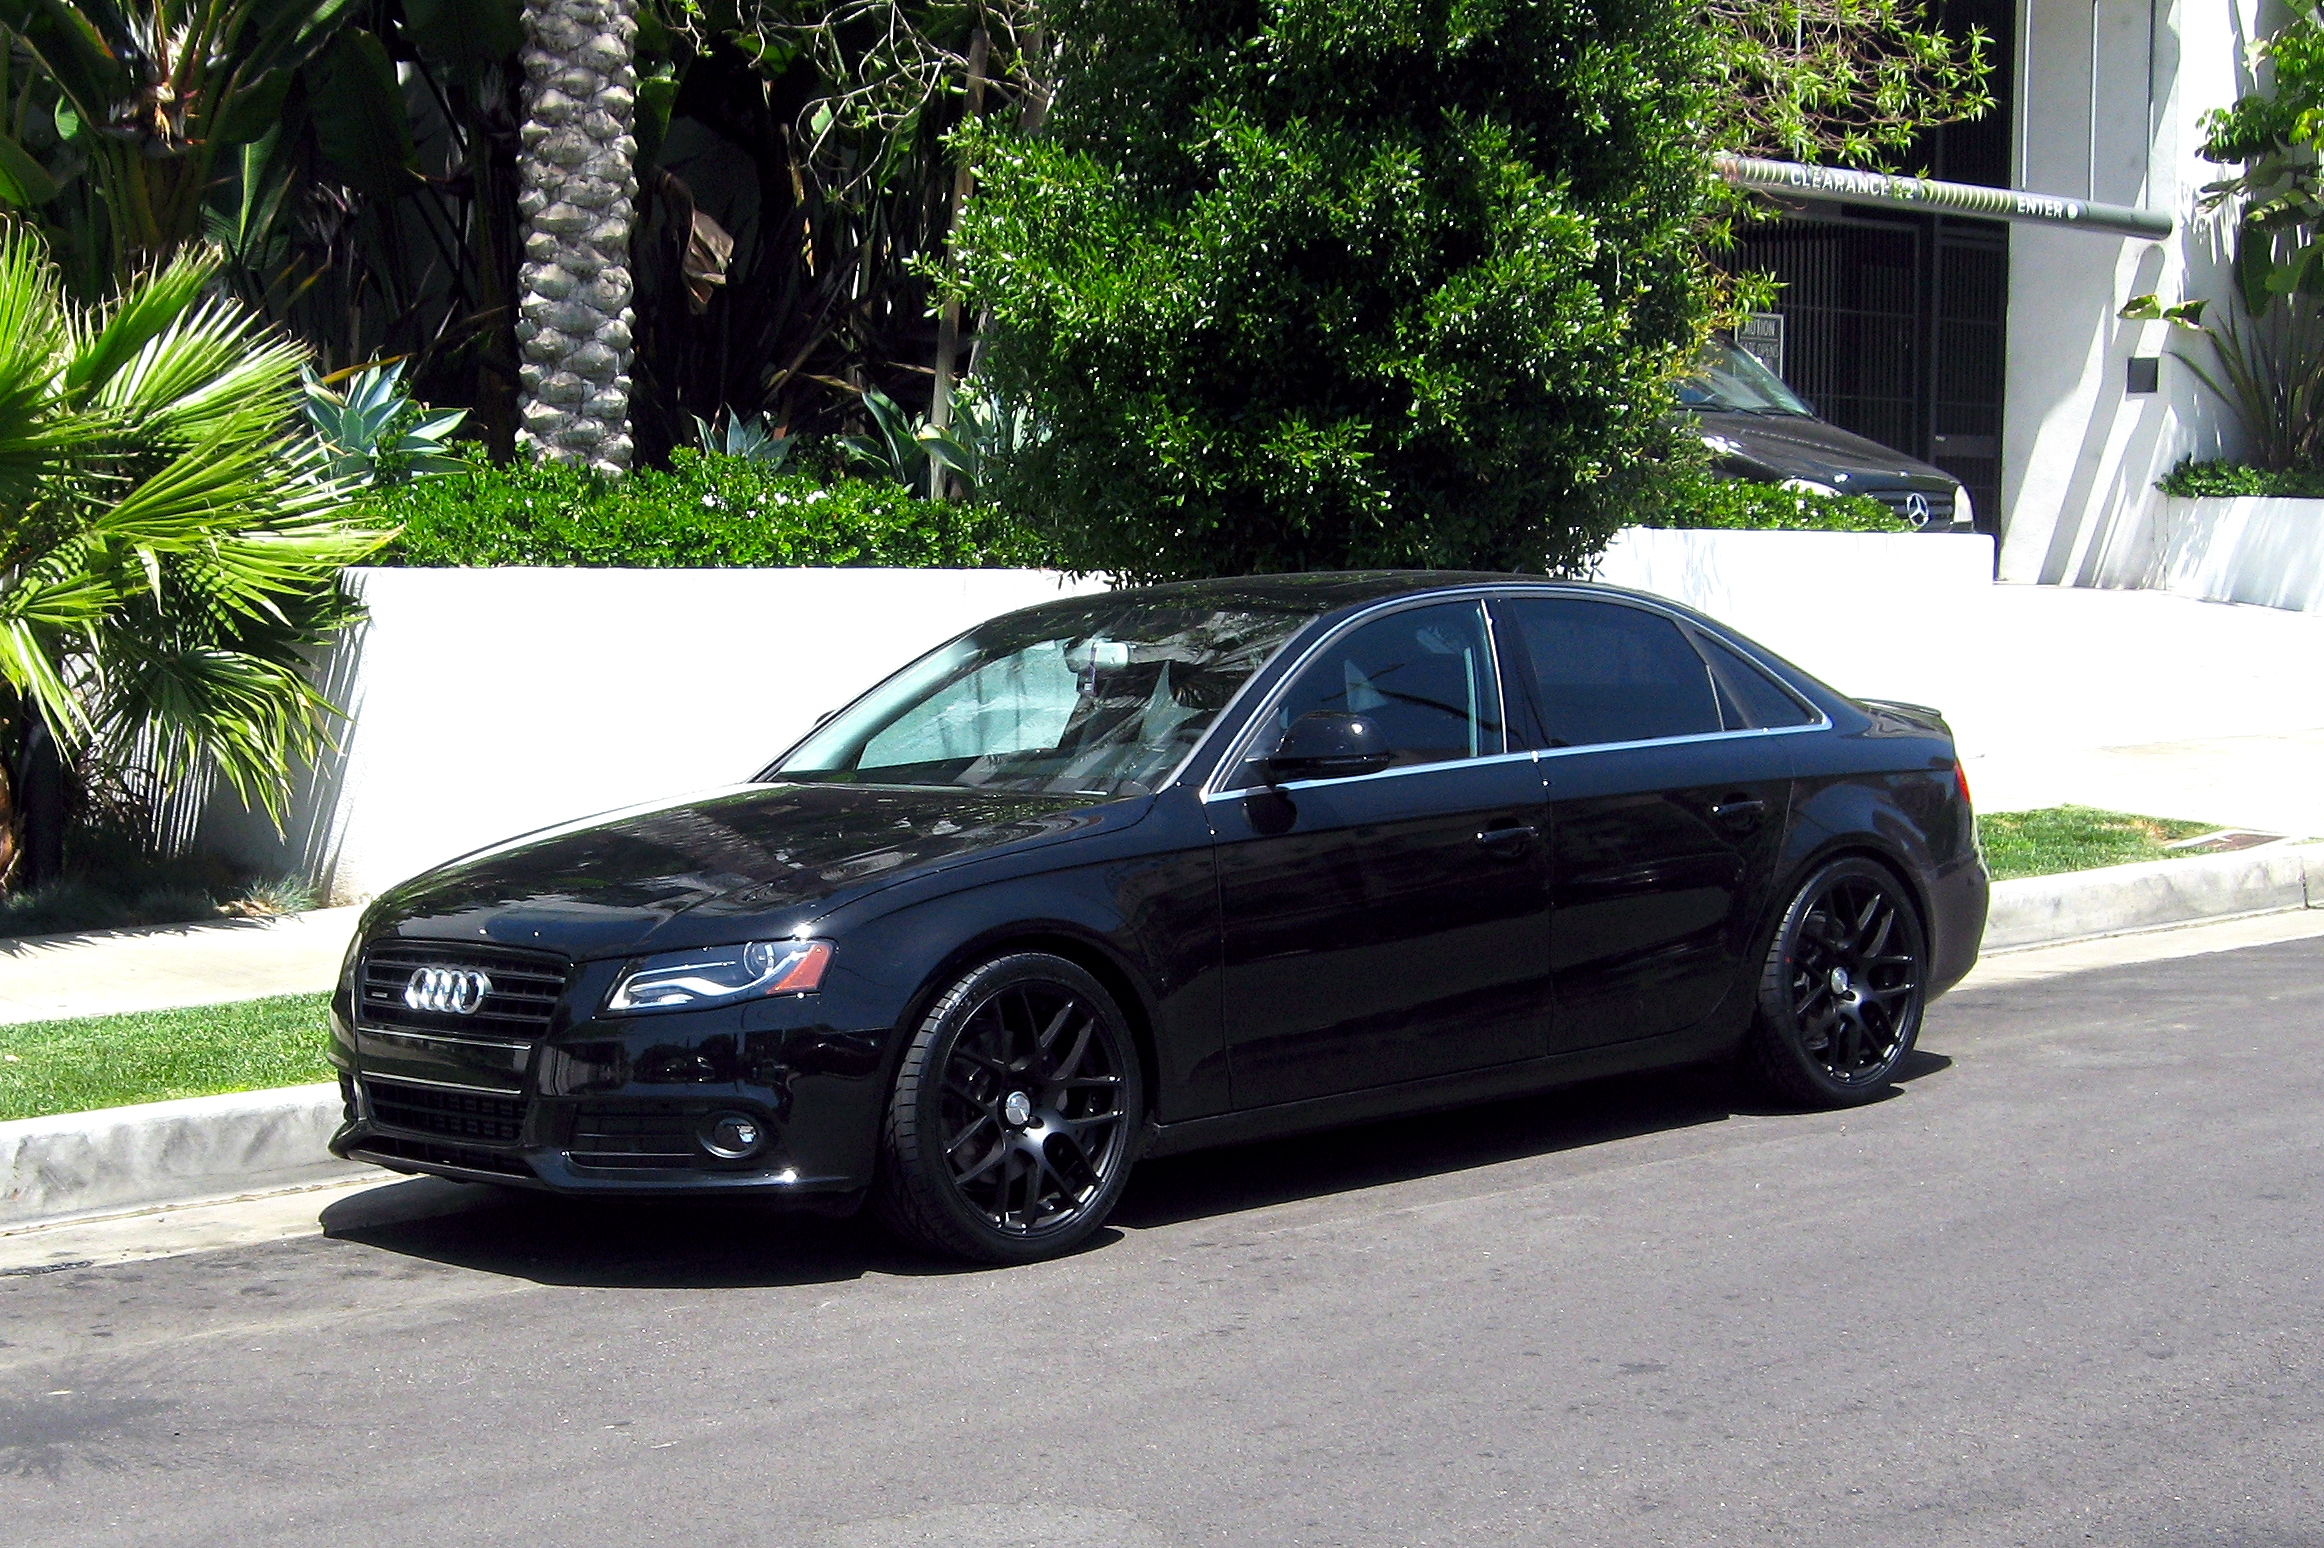 johntnethk 2010 audi a4 specs photos modification info at cardomain. Black Bedroom Furniture Sets. Home Design Ideas